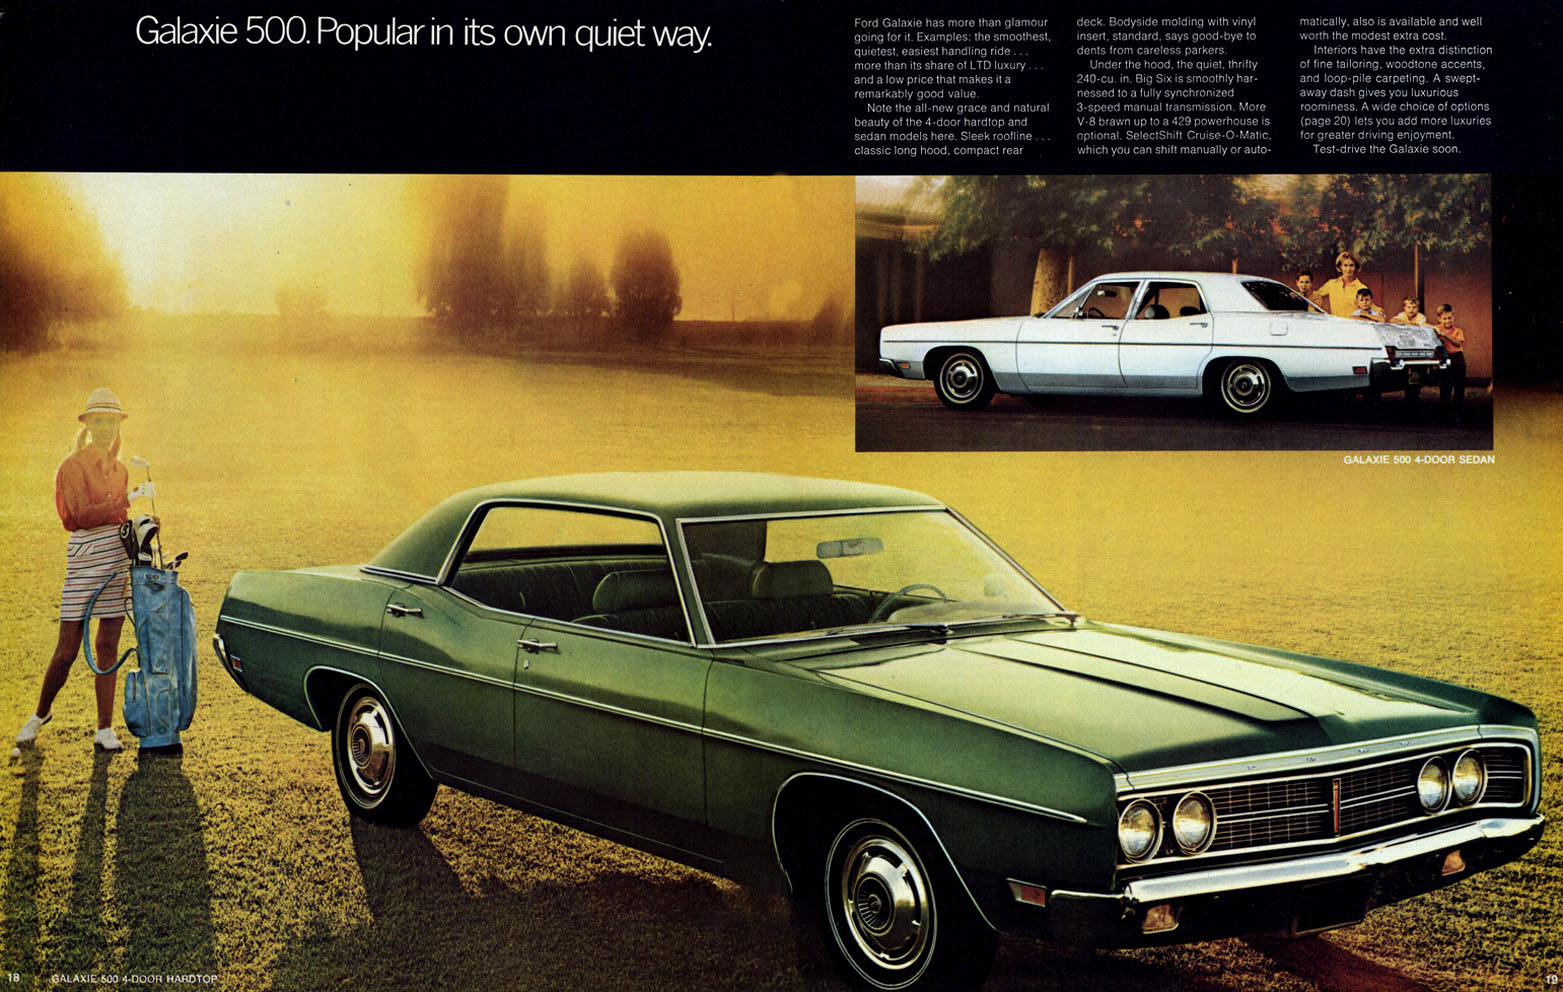 Directory Index: Ford/1970_Ford/1970_Ford_Full_Size_Brochure